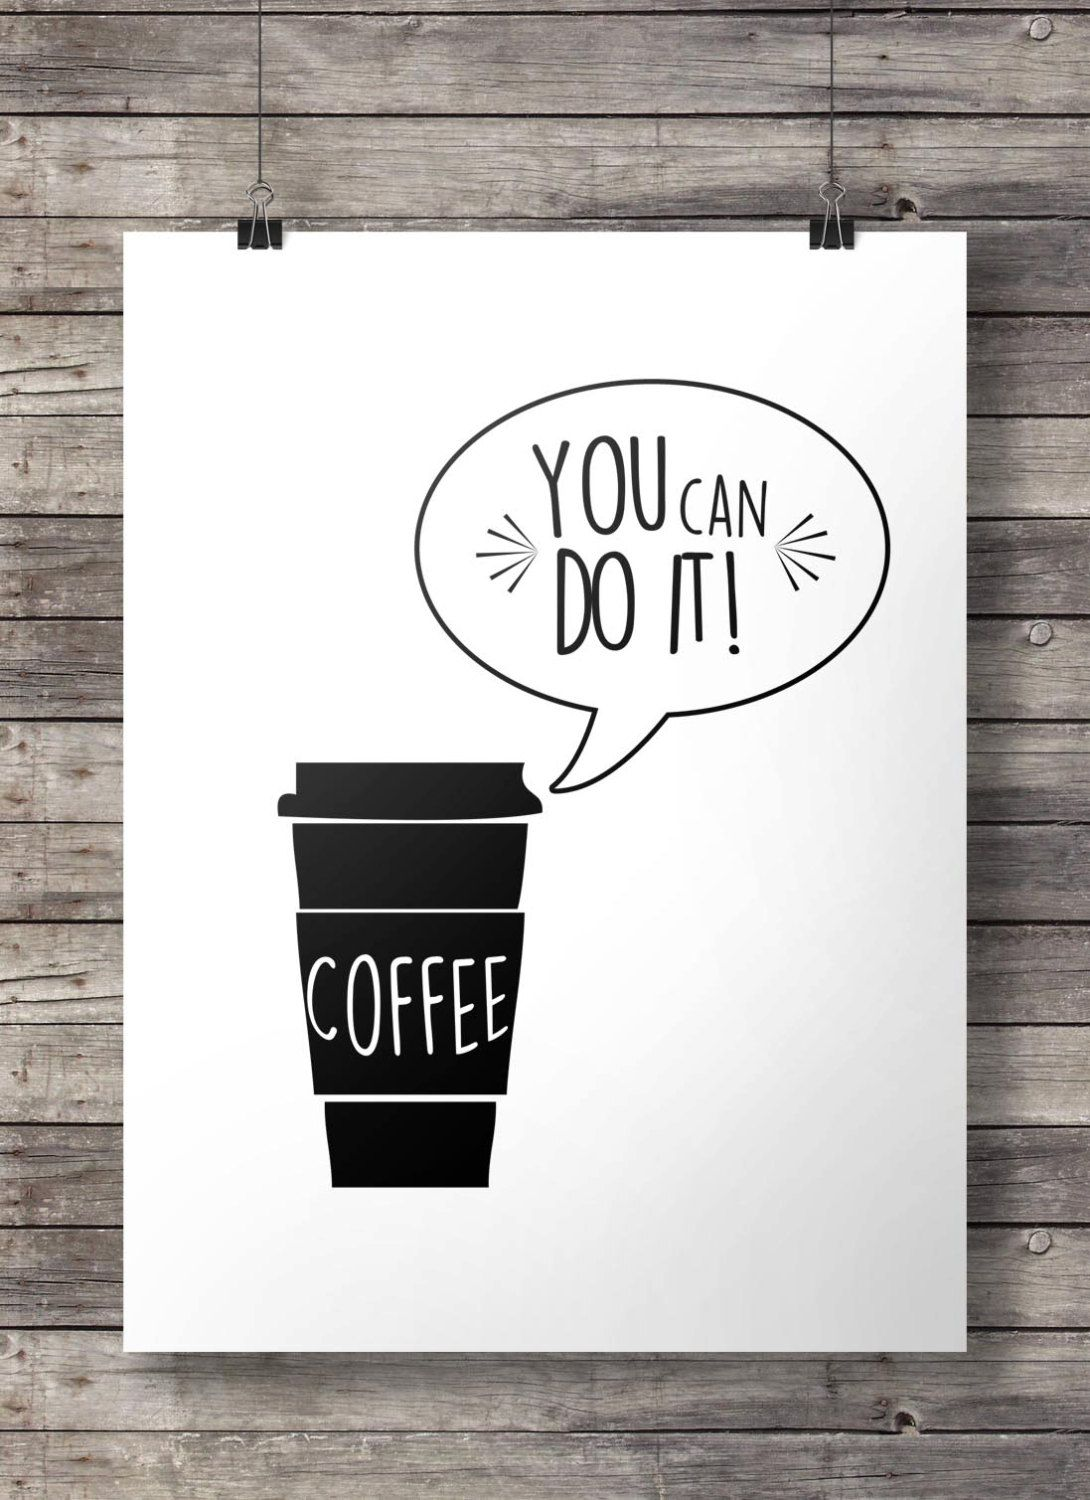 Printable art you can do it coffee art print black and white